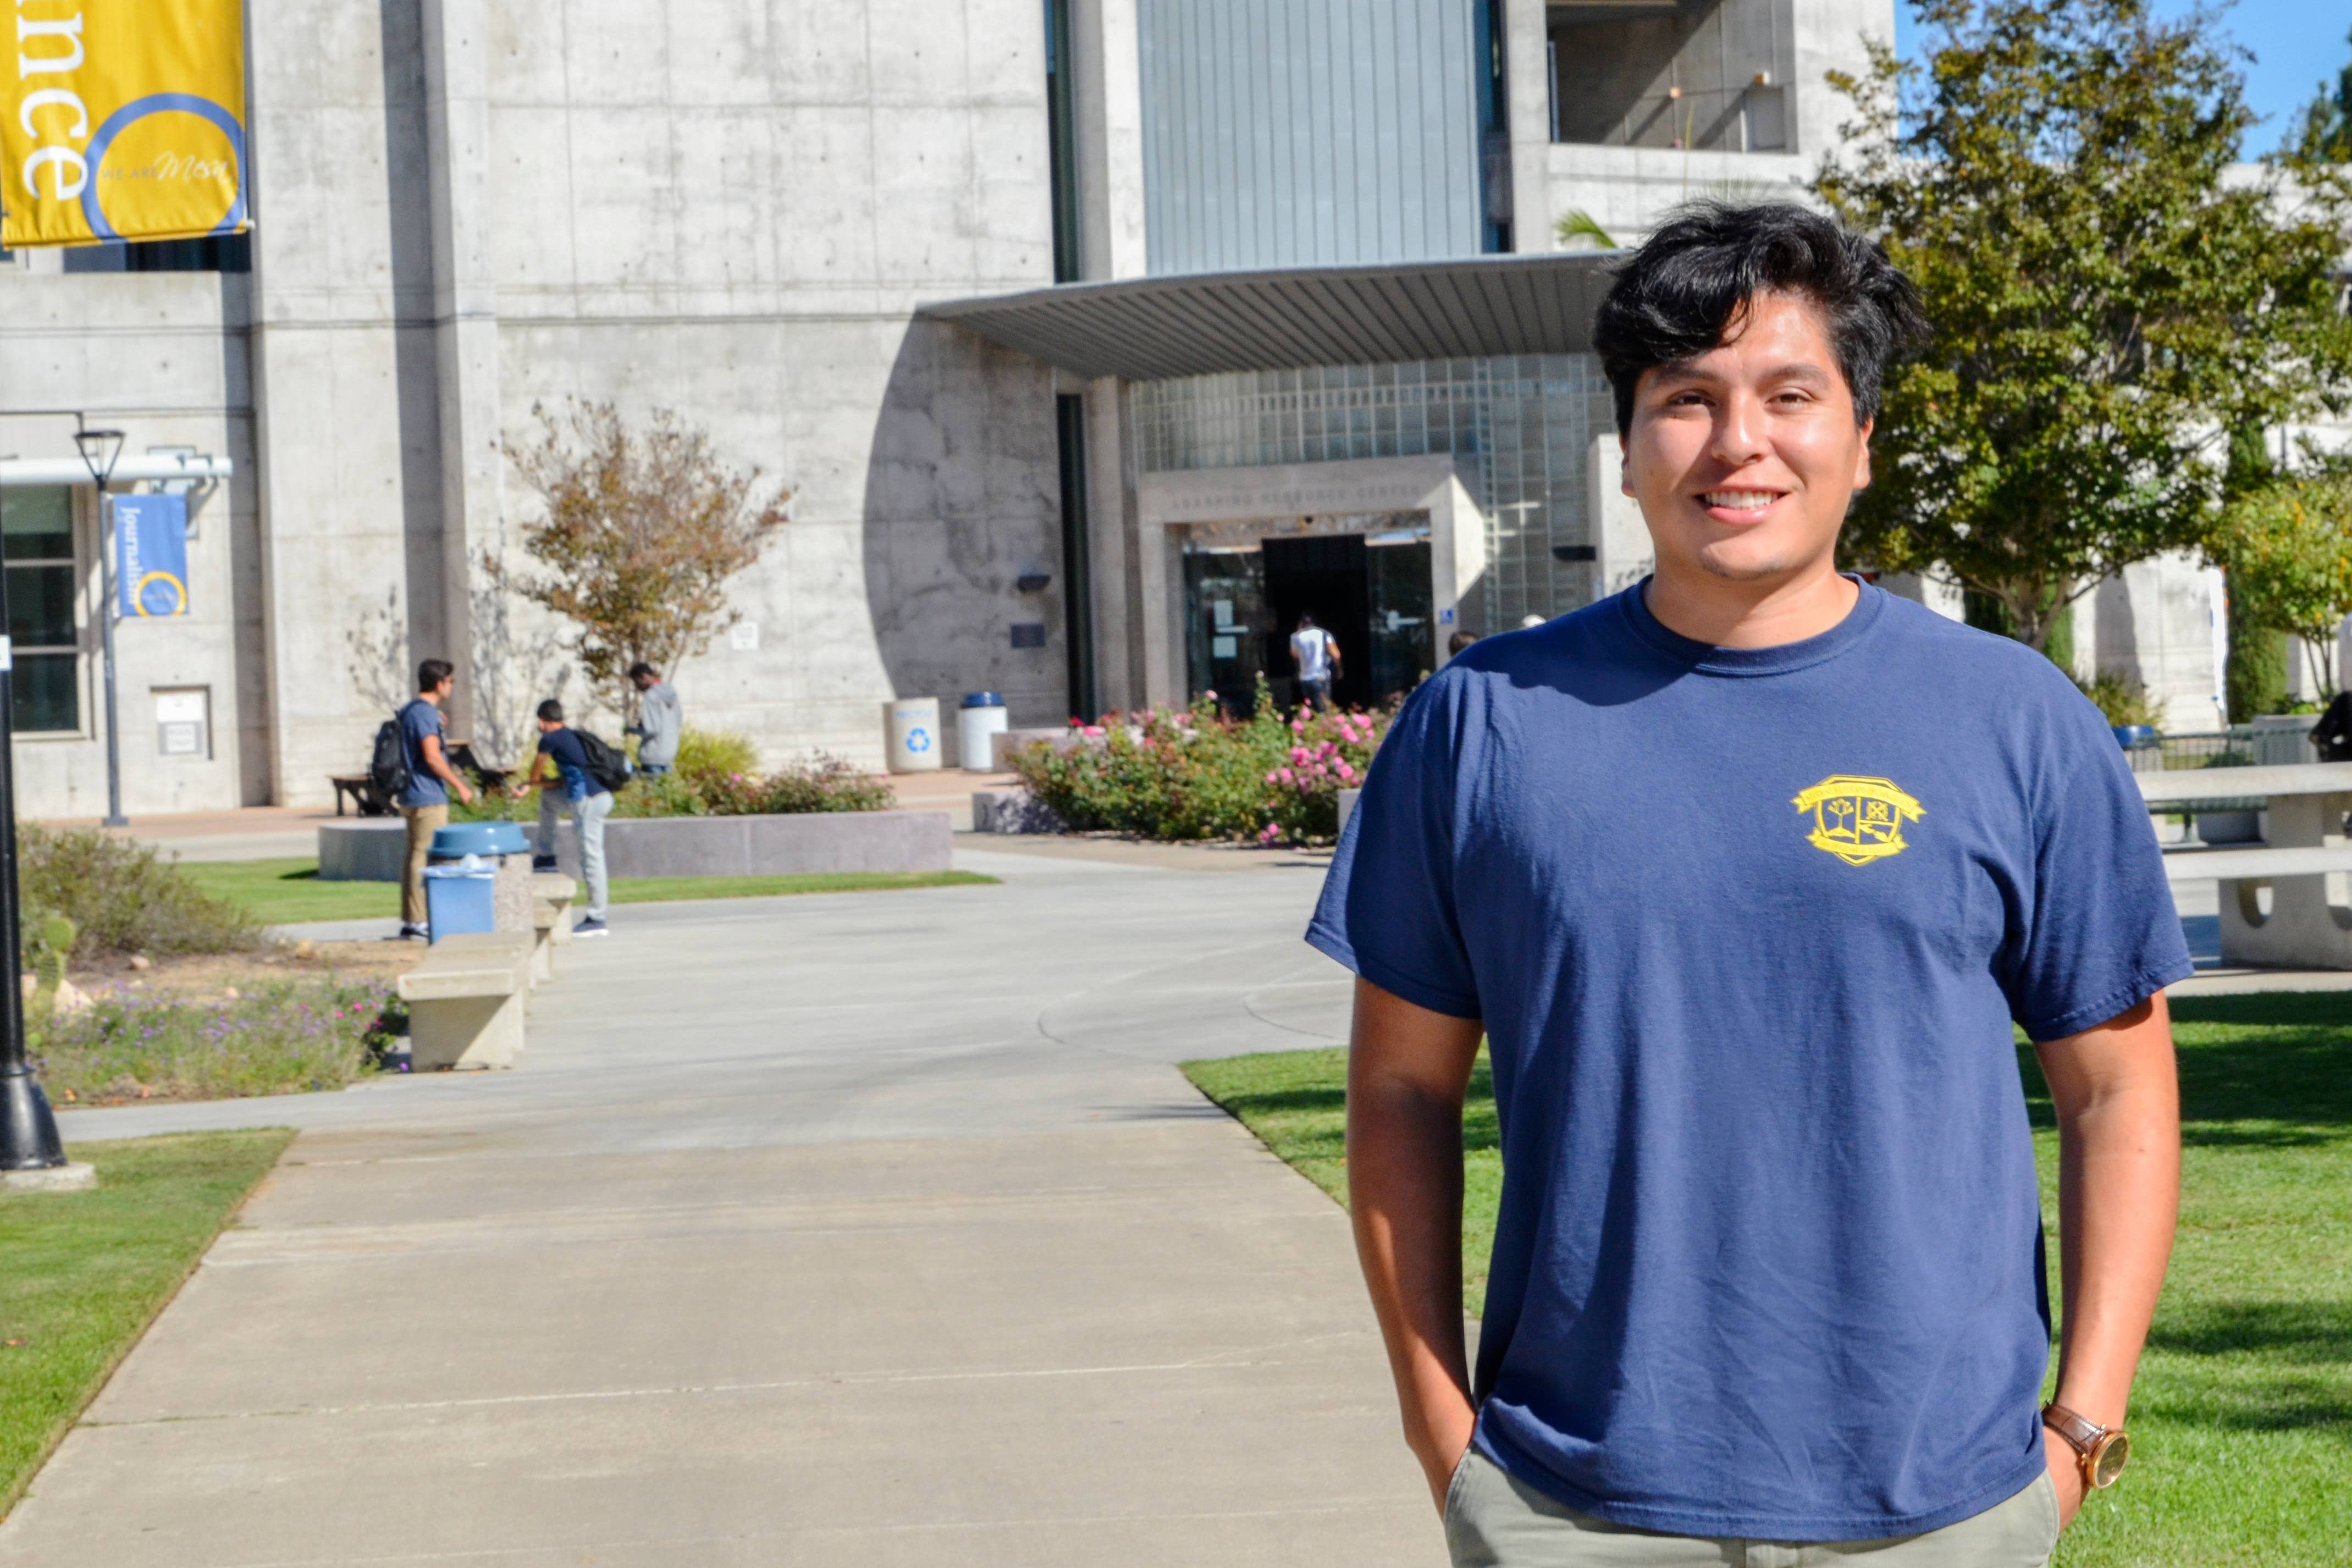 After four years of service in the United States Marine Corps, Bakersfield native Freddy Cervantes began to pursue his college degree at San Diego Mesa College in 2014.